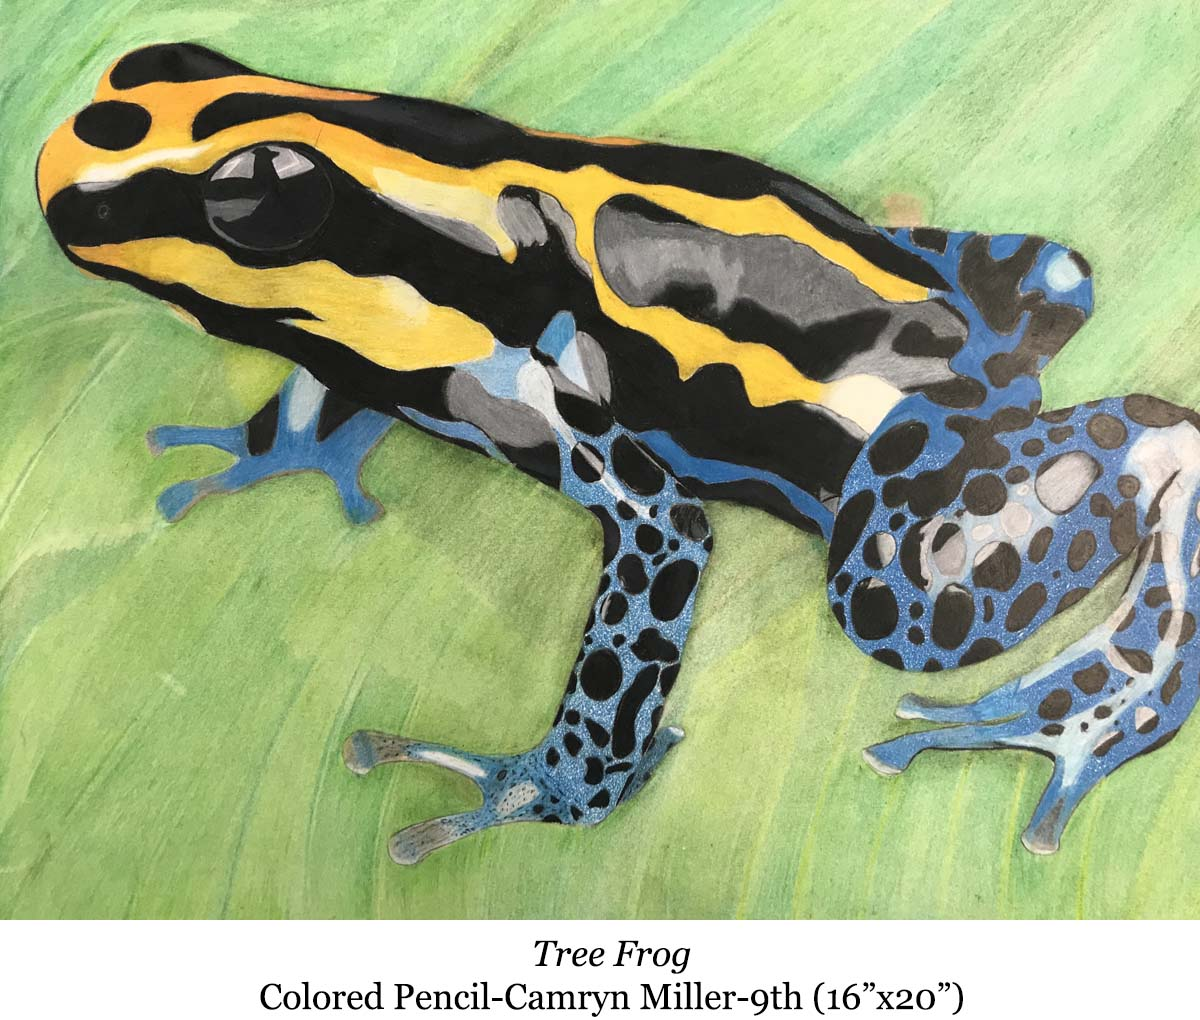 1587093375-tree_frog-colored_pencil-camryn_miller-9th__16_x20__